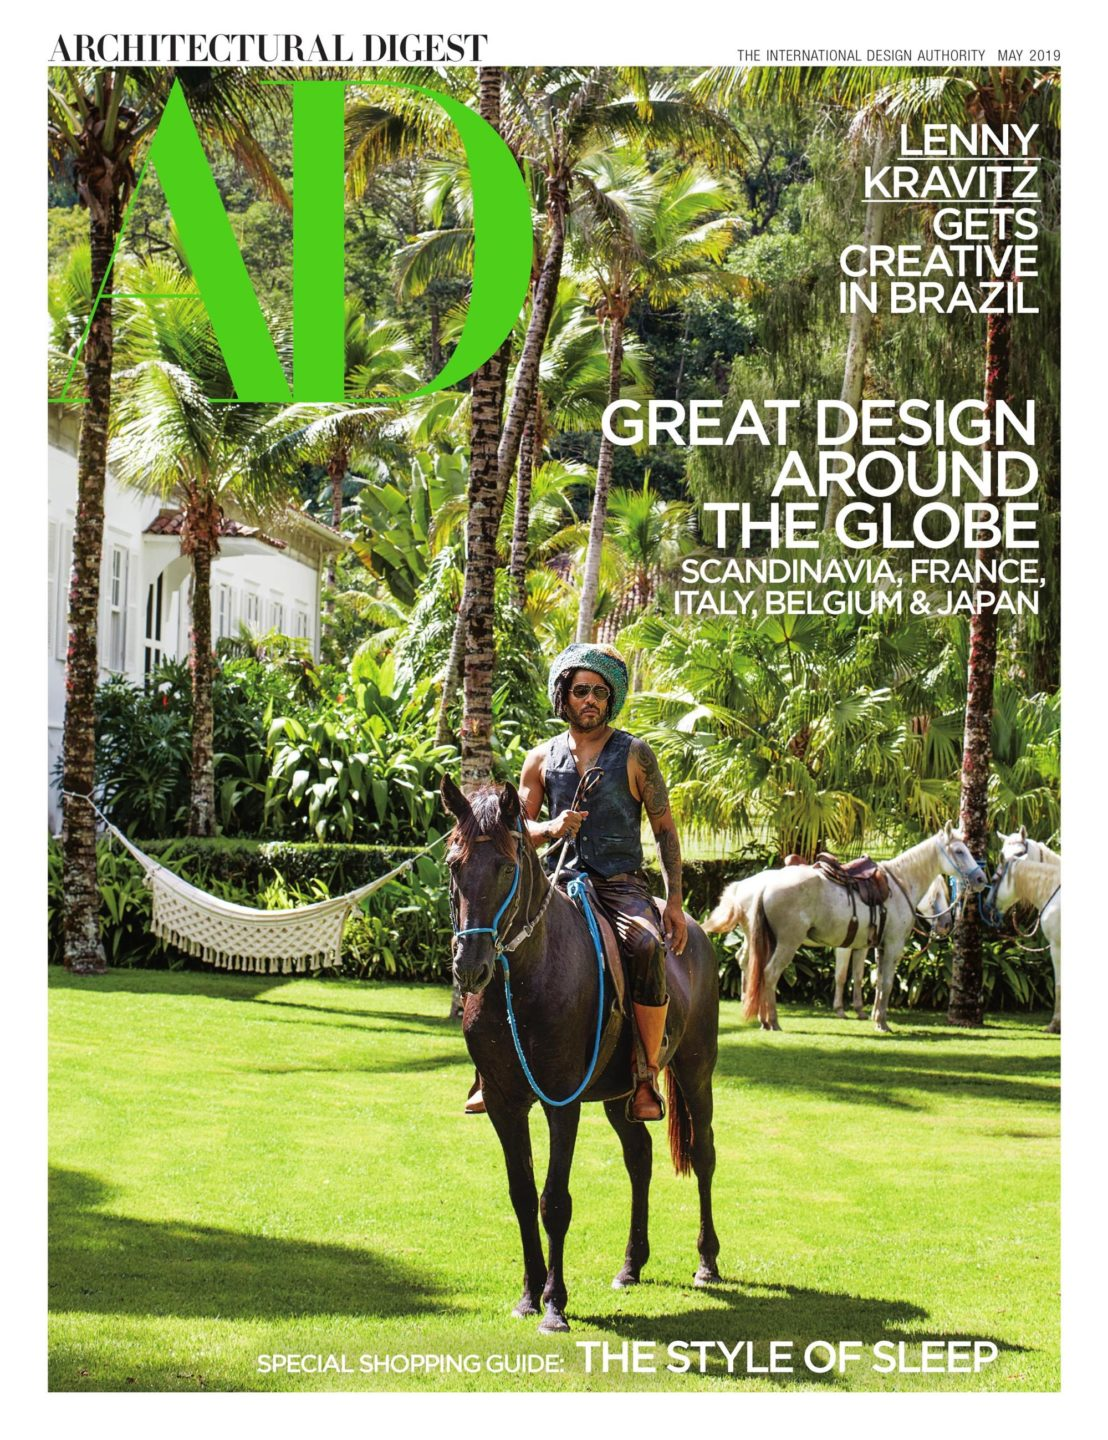 architectural-digest-nicole-fuller-press-cover